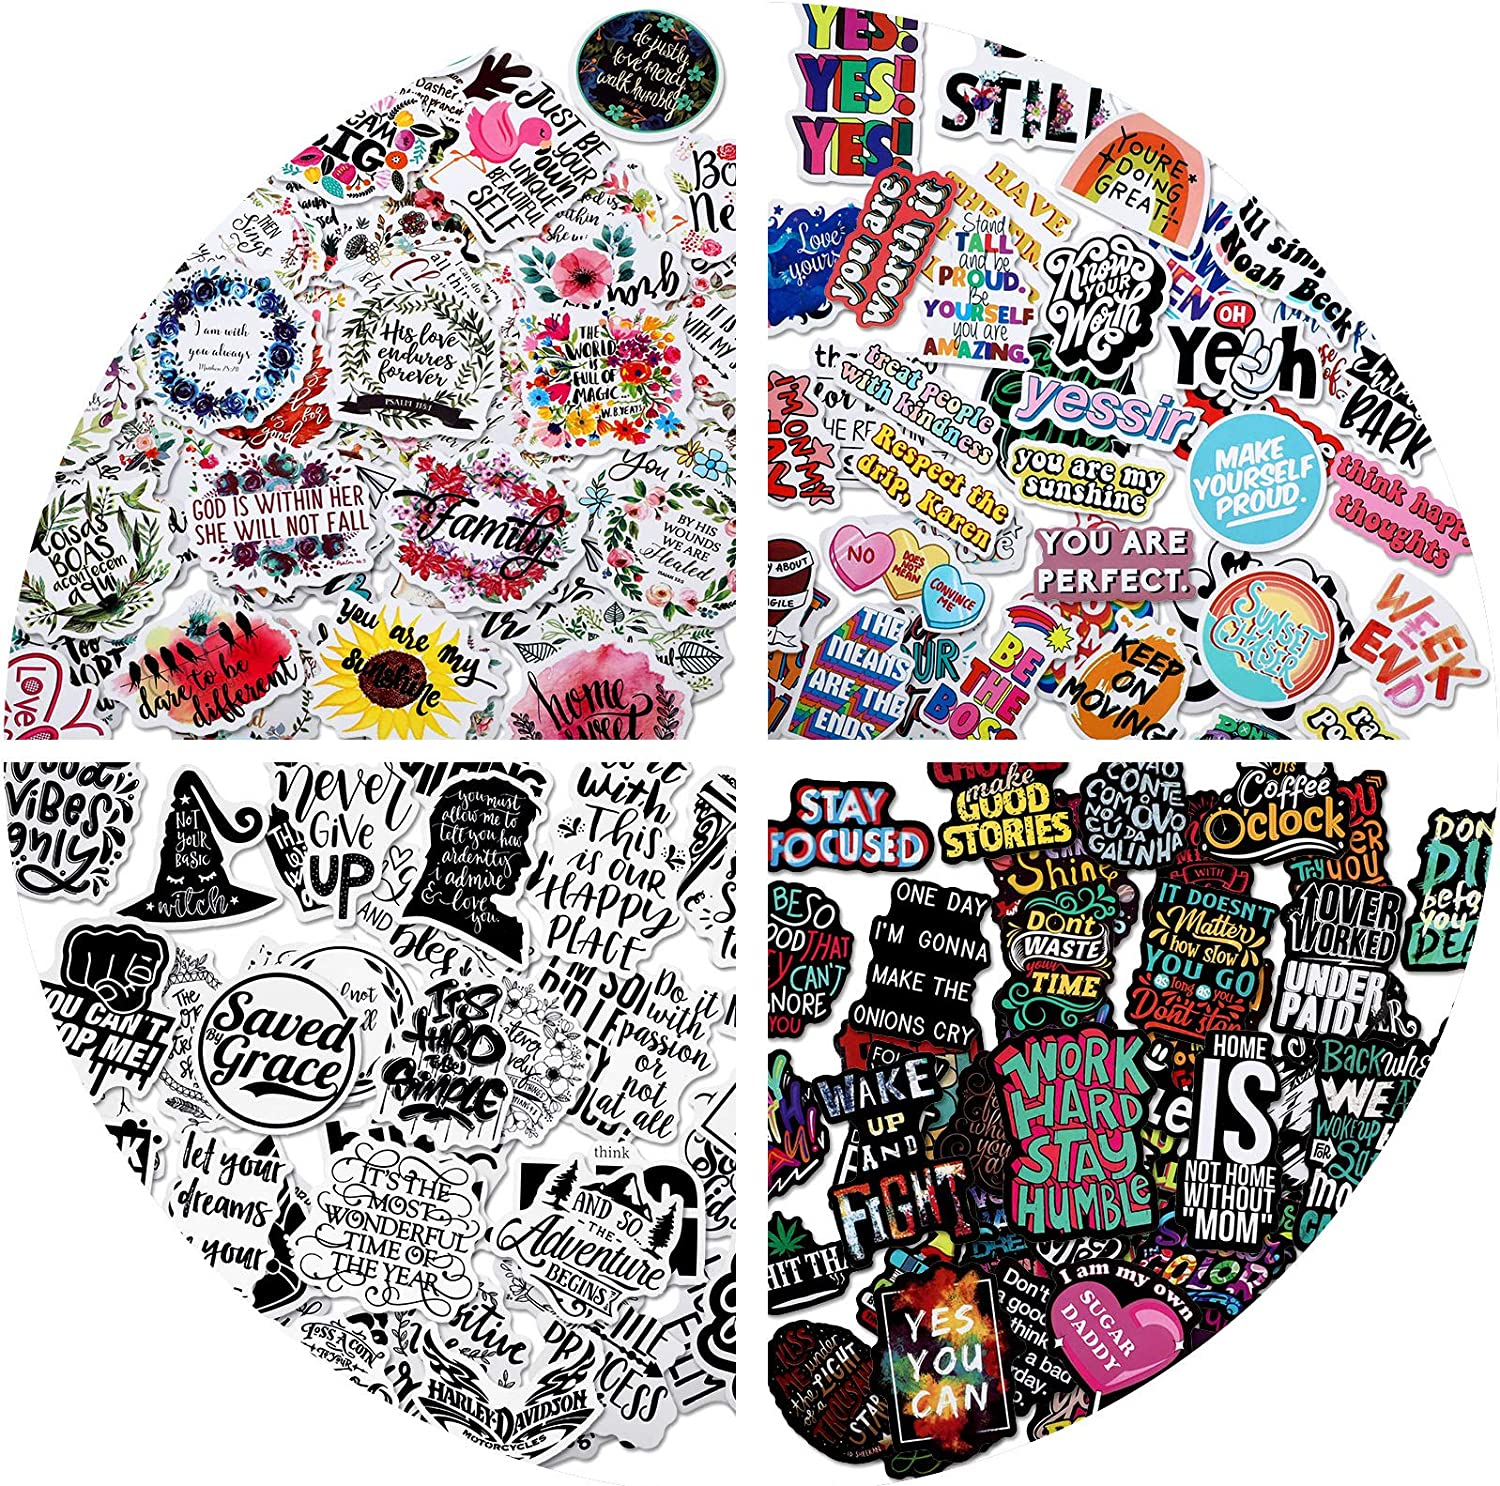 Zonon 200 Pieces Reward Motivational Stickers Waterproof Inspirational Stickers for Laptop Mix Vinyl Encouragement Decal for Adults and Teens Luggage, Guitar, Bottle, Refrigerator Decorations